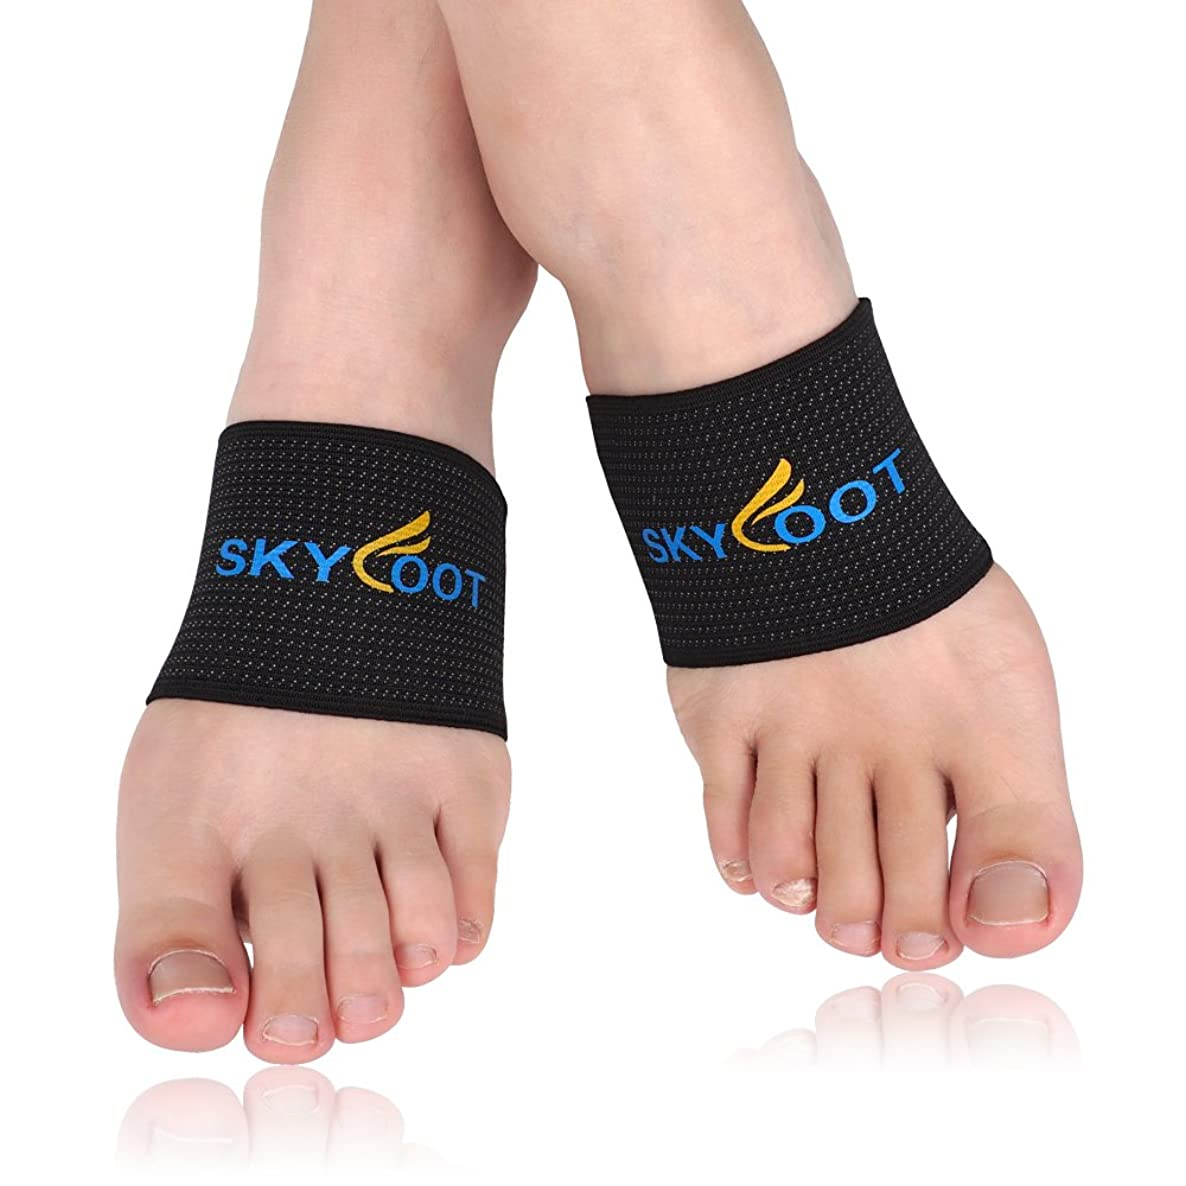 Skyfoot's Compression Copper Arch Support Socks, Plantar Fasciitis Braces / Sleeves Relief Pressure for Flat Feet (SMALL - W4.5-9 | M4.5-8)